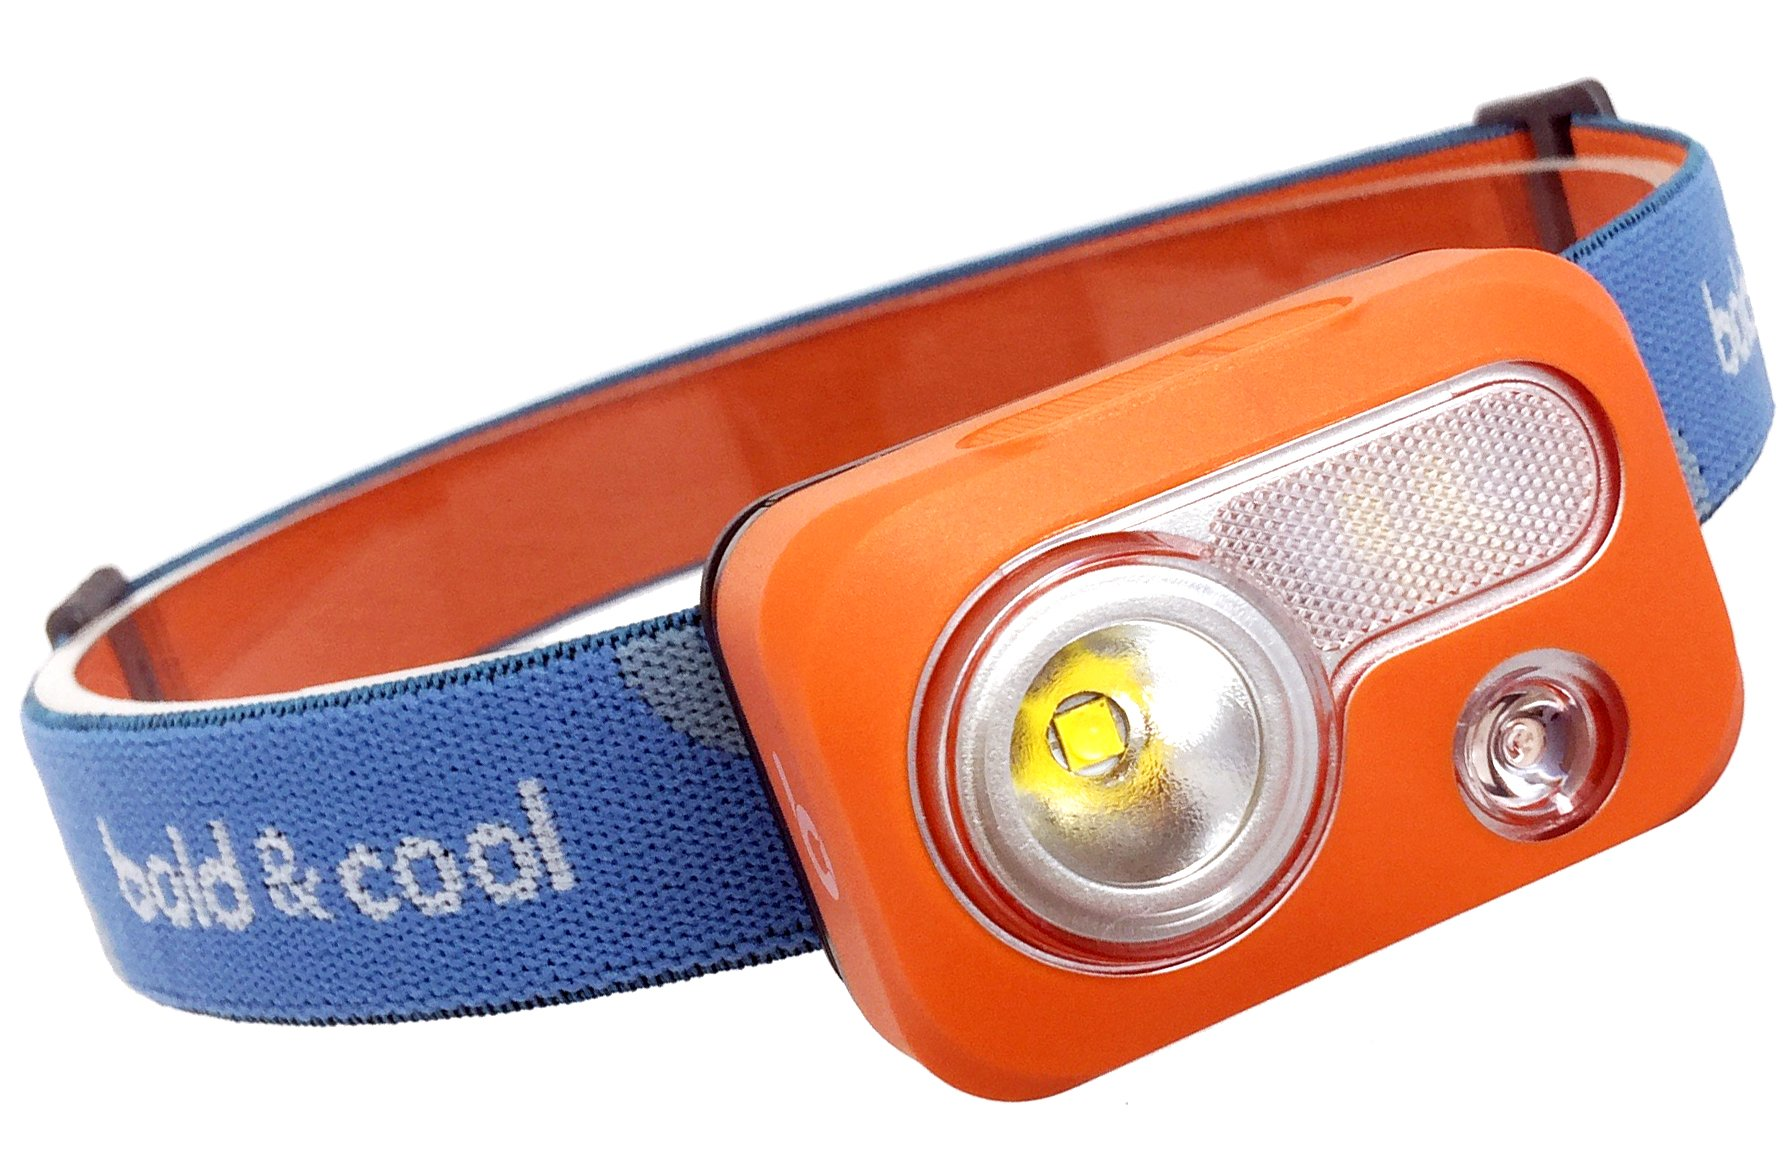 Nova Lux Storm LED Headlamp with 6 light modes, IPX7 Waterproof, Bright 215 Lumen CREE LED, RED Strobe SOS, Lightweight, for backpacking, camping, trekking, hiking, running at dusk, even reading, etc